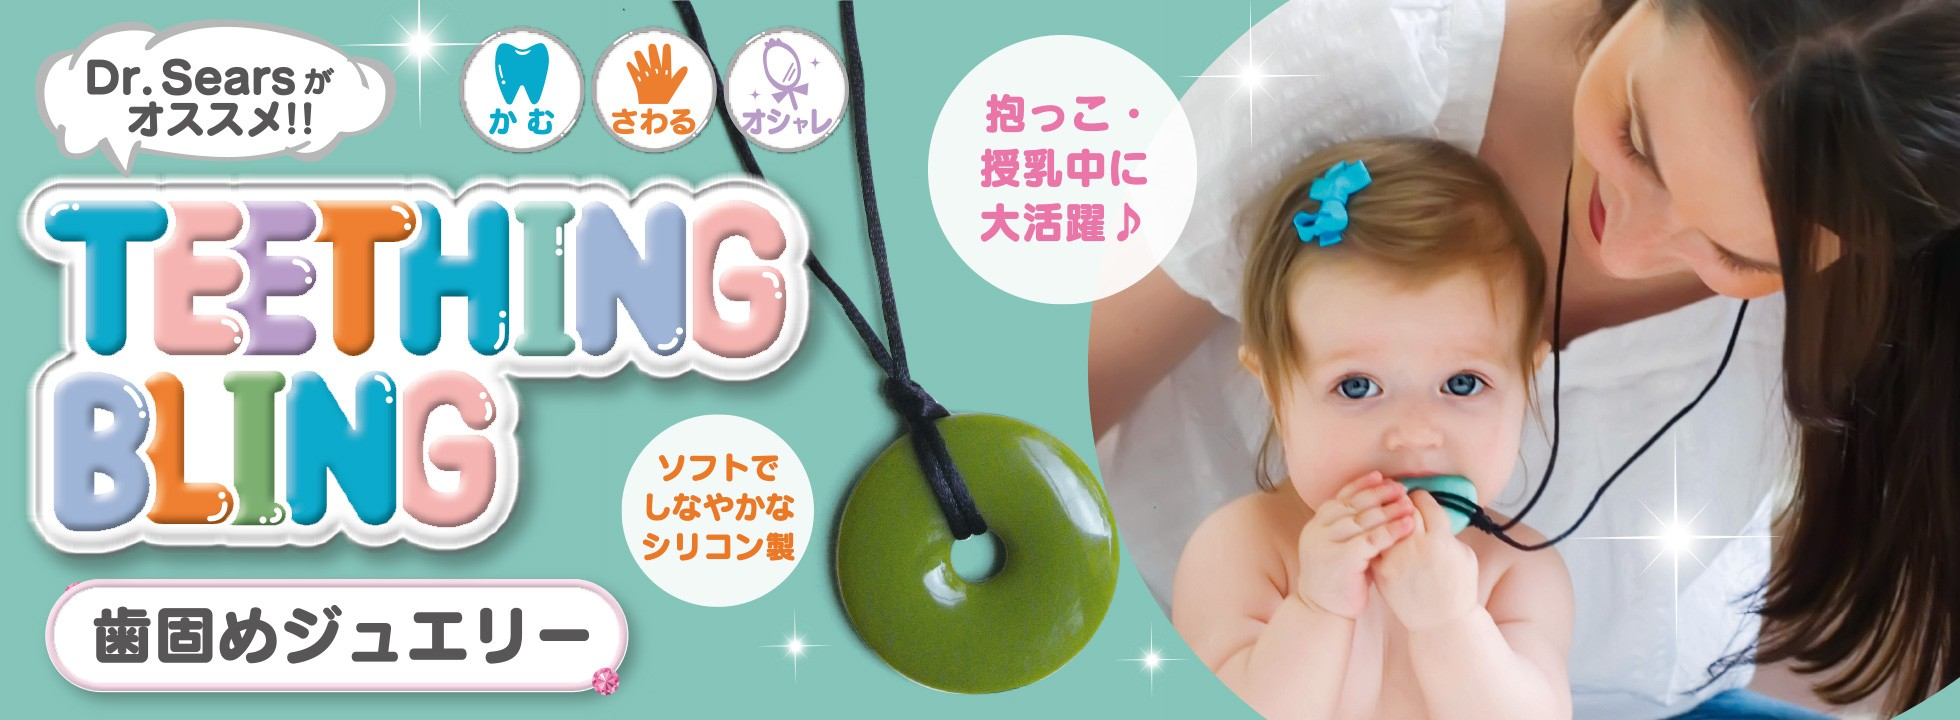 Teething Bling�i�e�B�[�V���O�u�����O�j